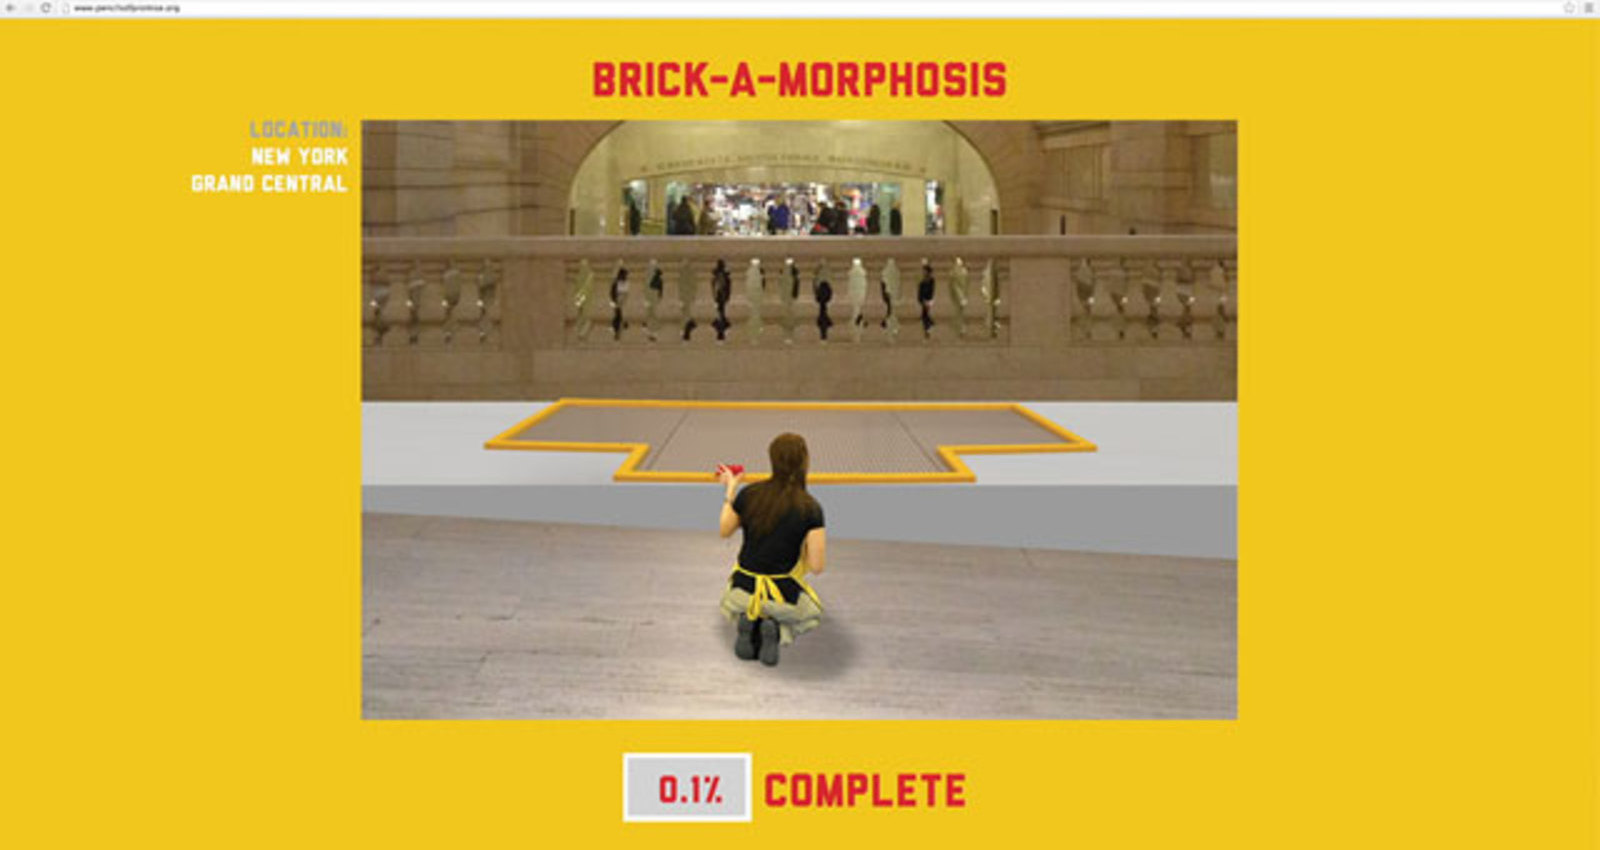 Brick-A-Morphosis